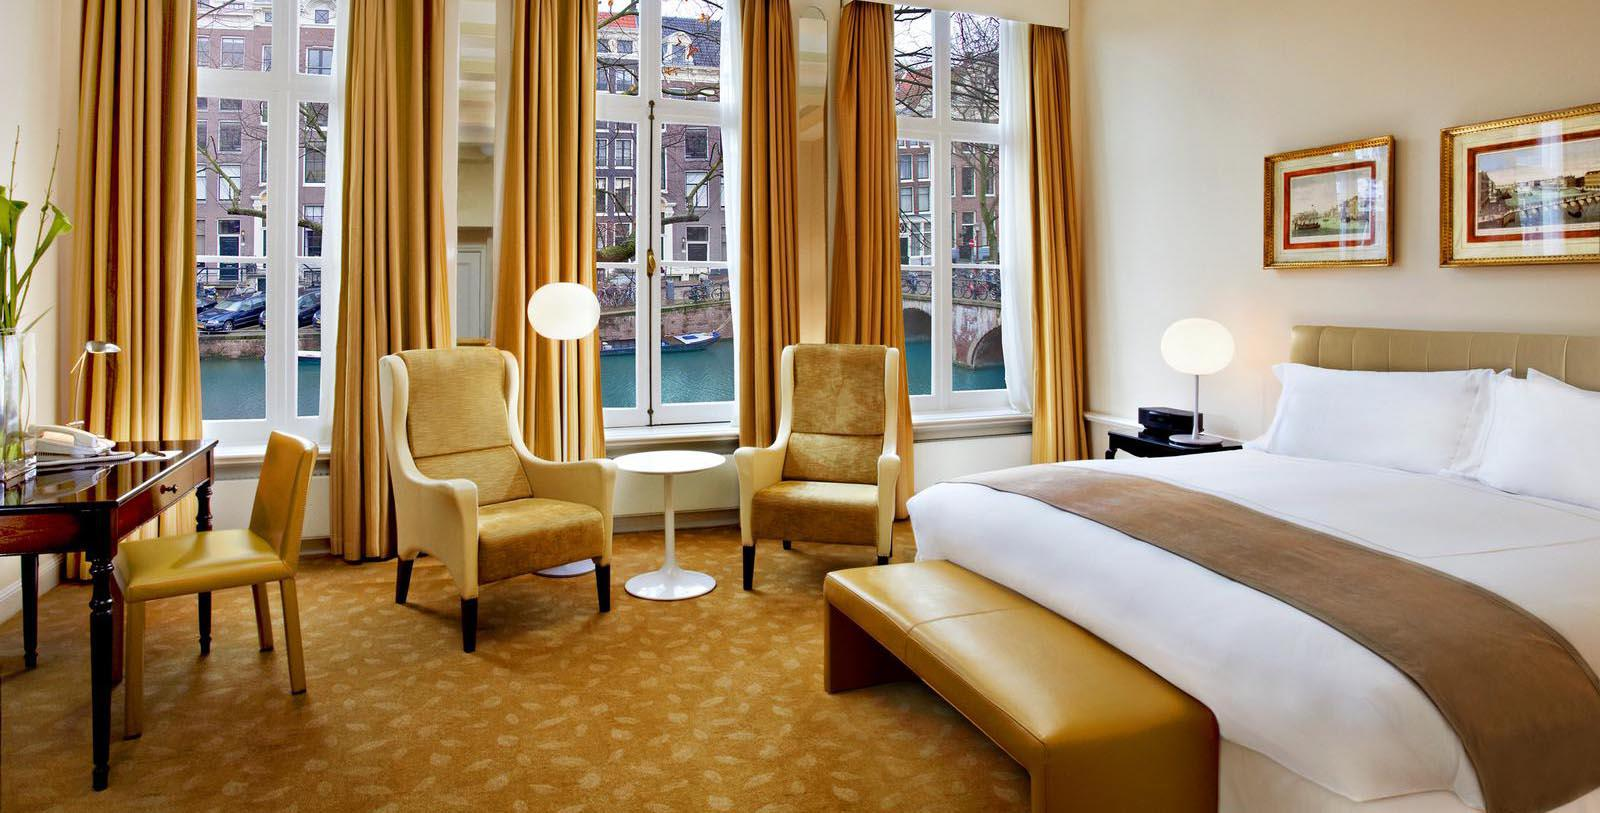 Image of Guestroom Interior Pulitzer Amsterdam, 17th Century, Member of Historic Hotels Worldwide, in Amsterdam, Netherlands, Location